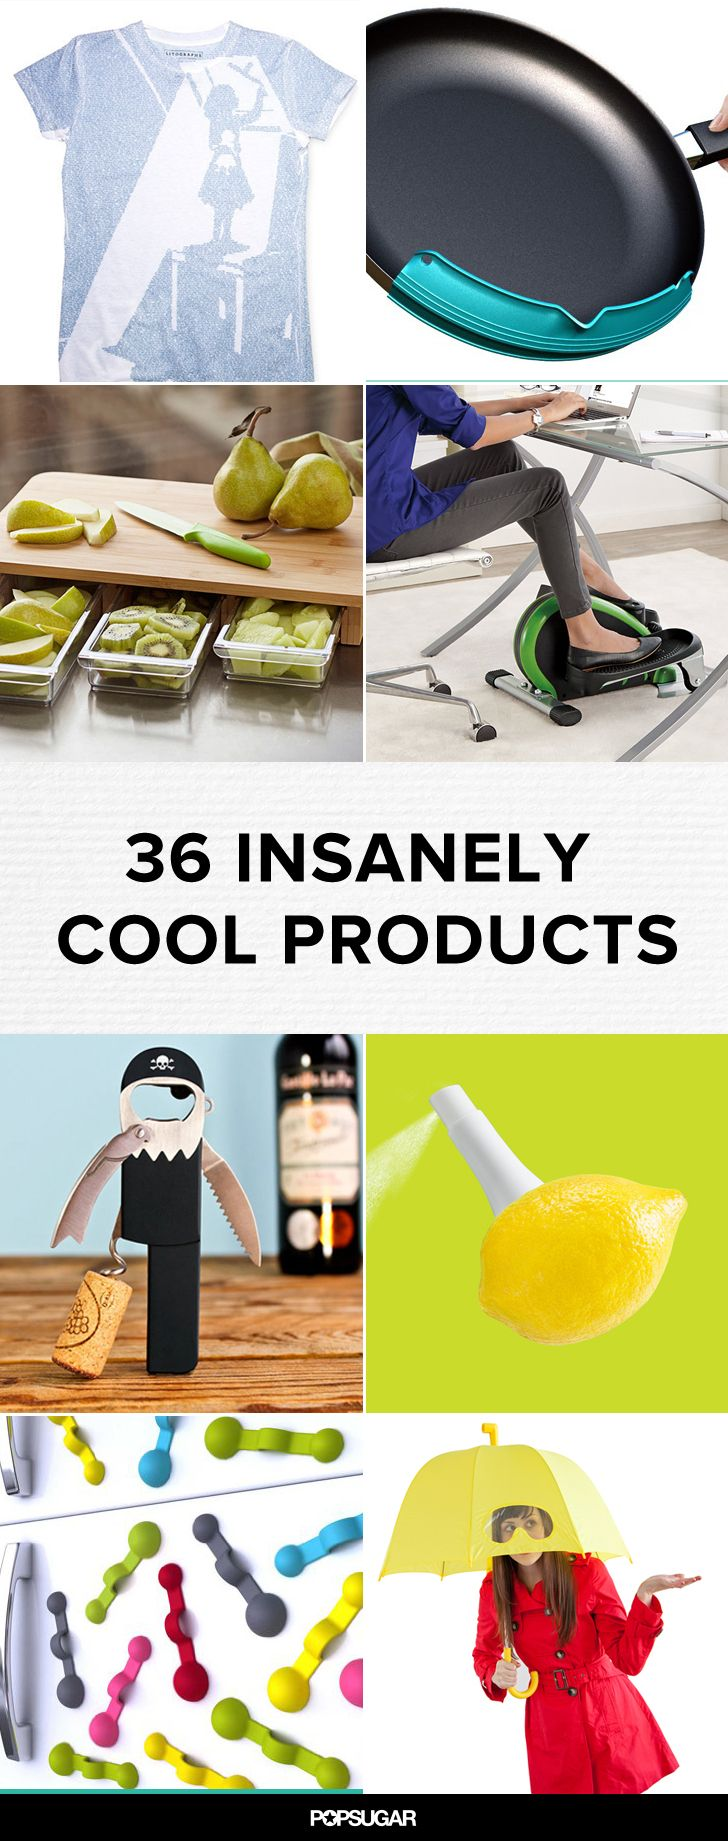 271 Best Images About Fun Random Items On Pinterest